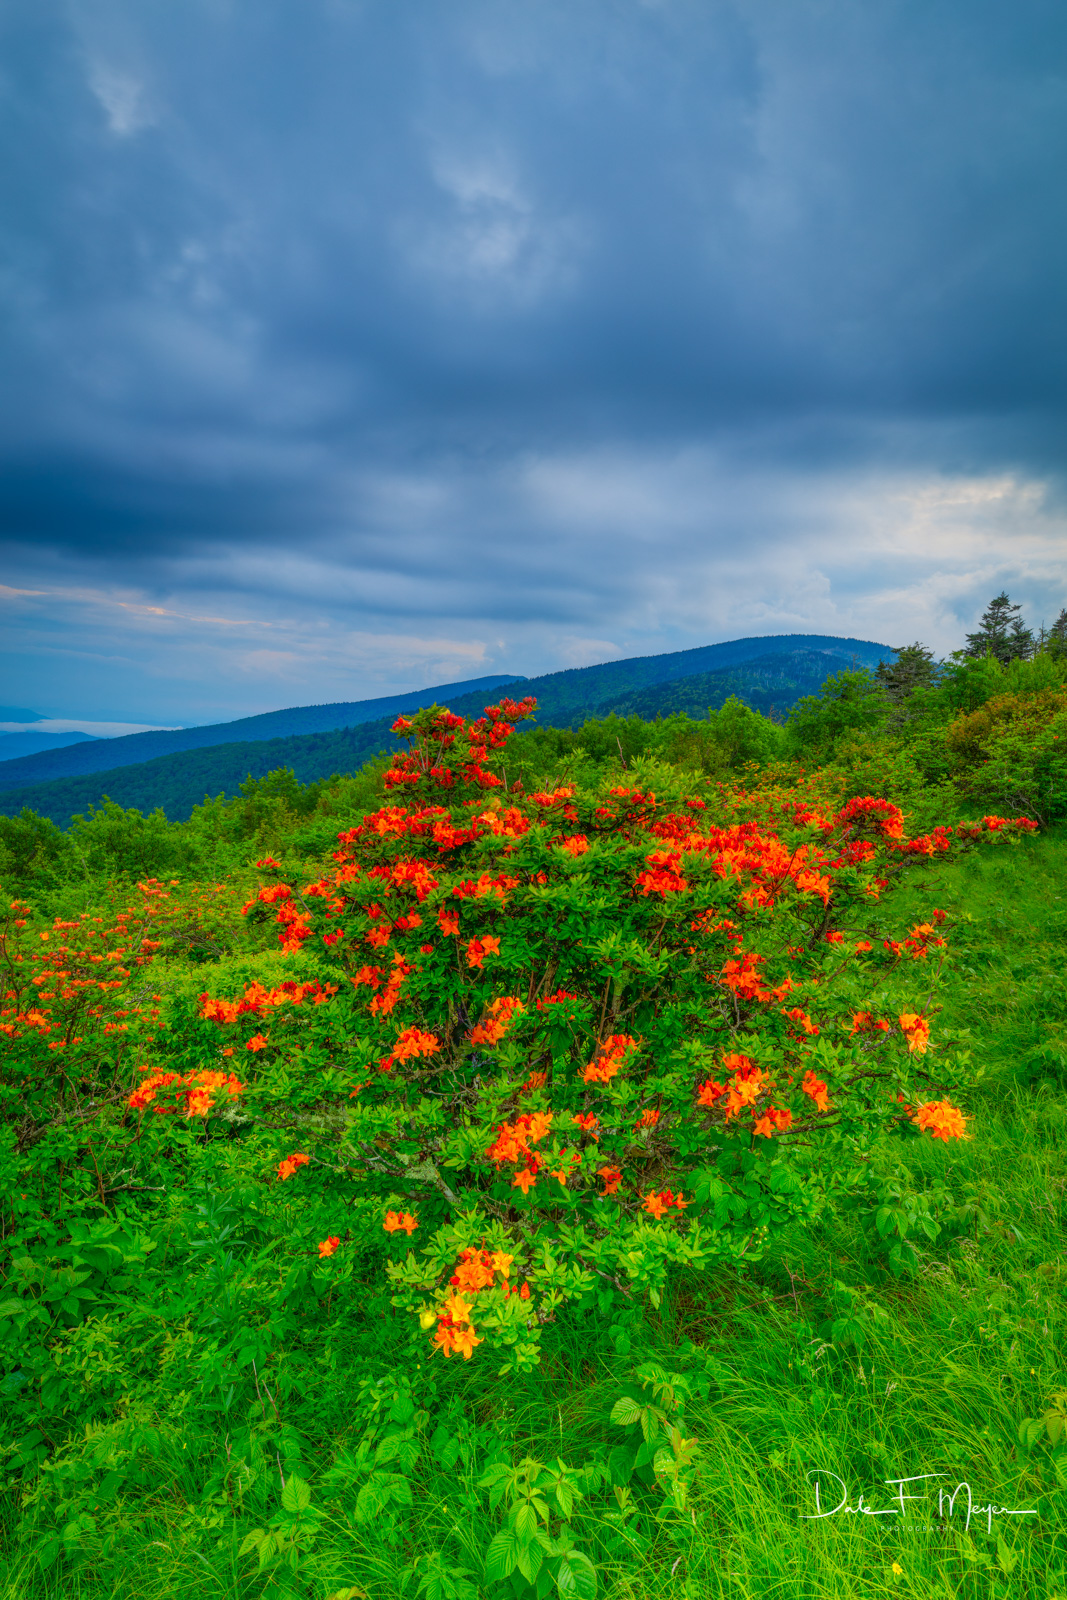 Flora Gallery, Rhododendrons, Roan Mountain NC, Summer 2018, photo